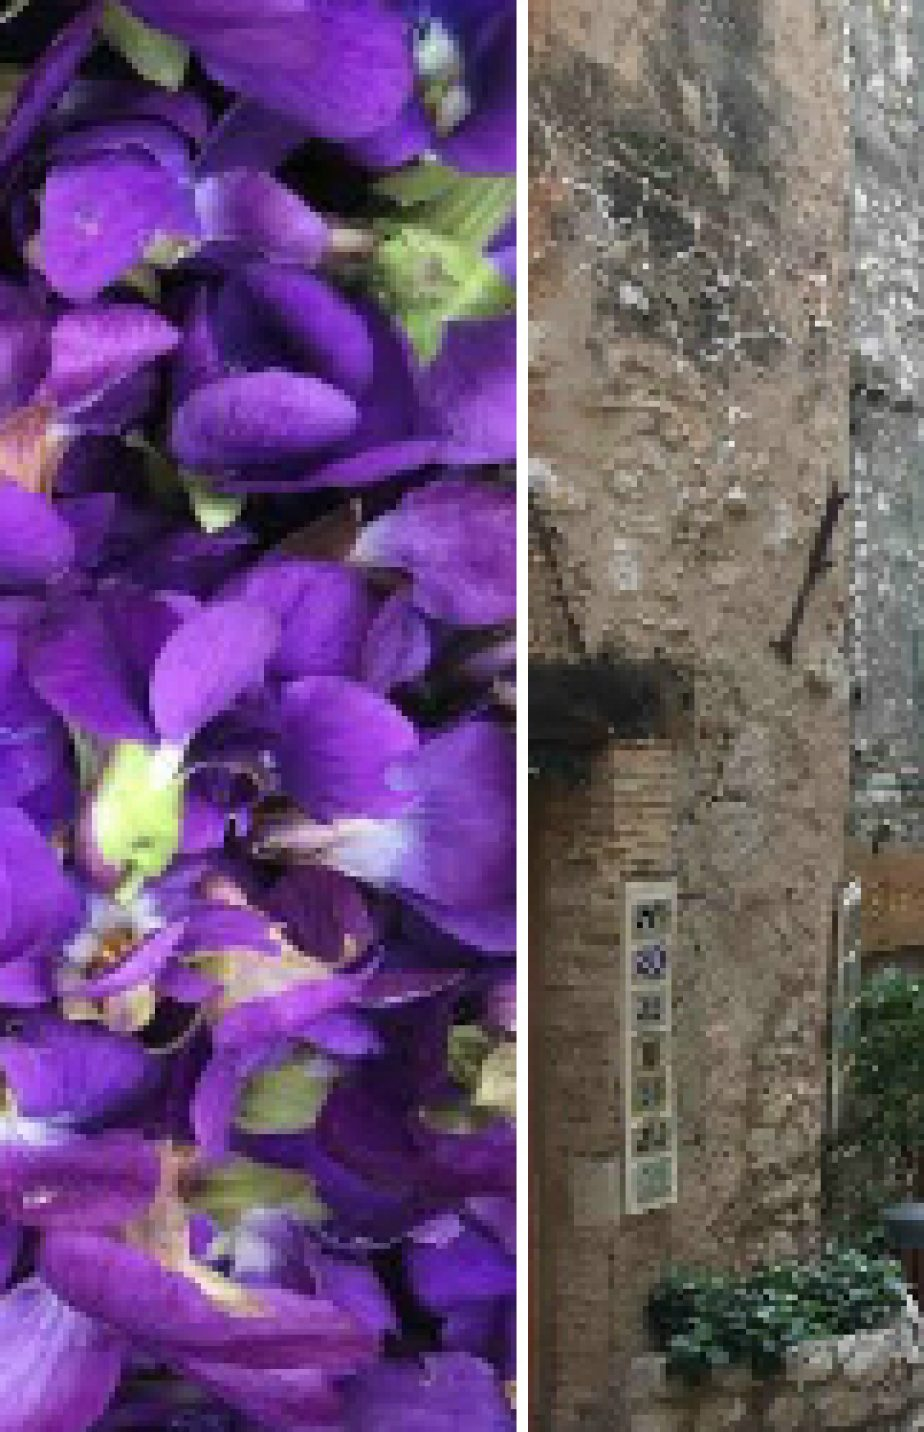 February 2017 – Violets in Tourrettes-sur-Loup and Provencal lunch